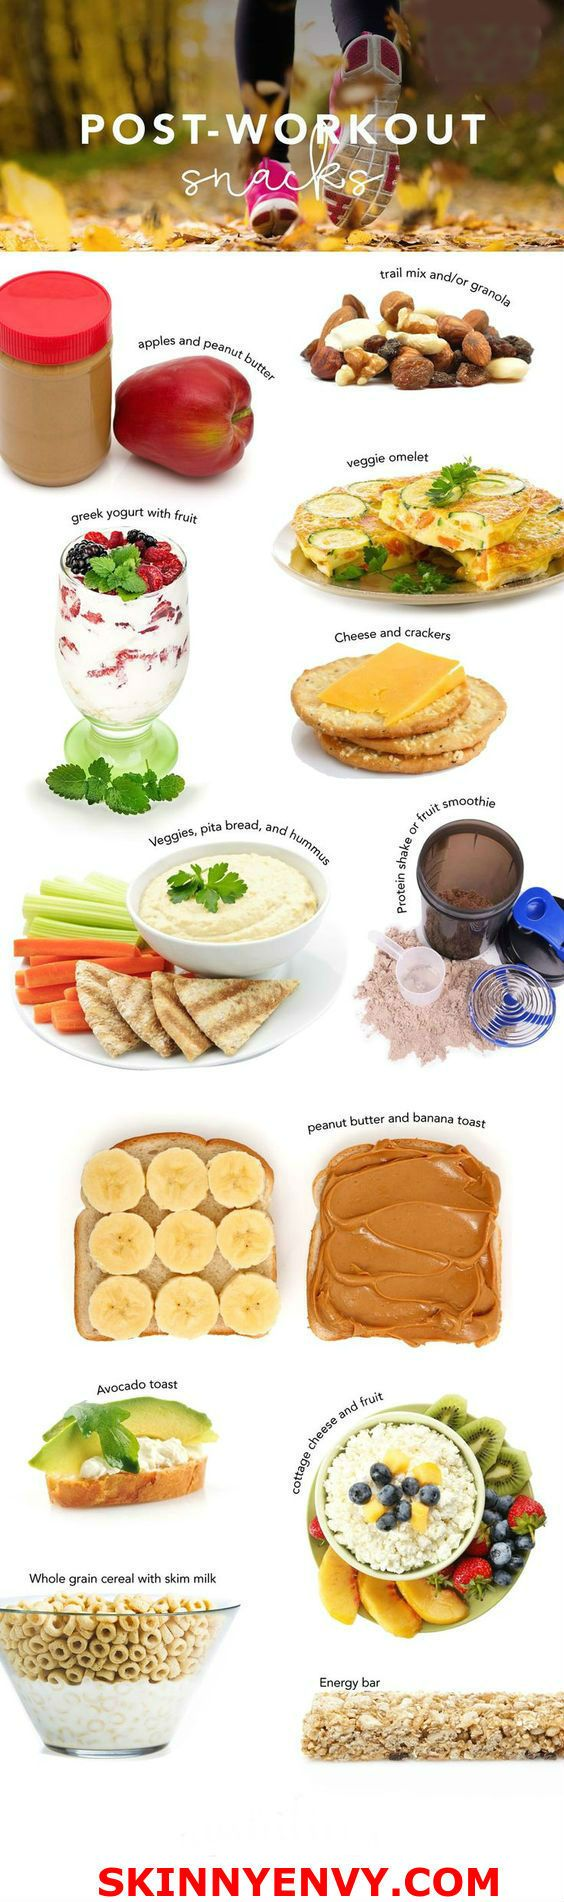 12 Healthy Post-Workout Snacks! Great options for refueling your muscles! Quick & easy ideas! VISIT skinnyenvy.com for more! #postworkoutsnacks #slimdown